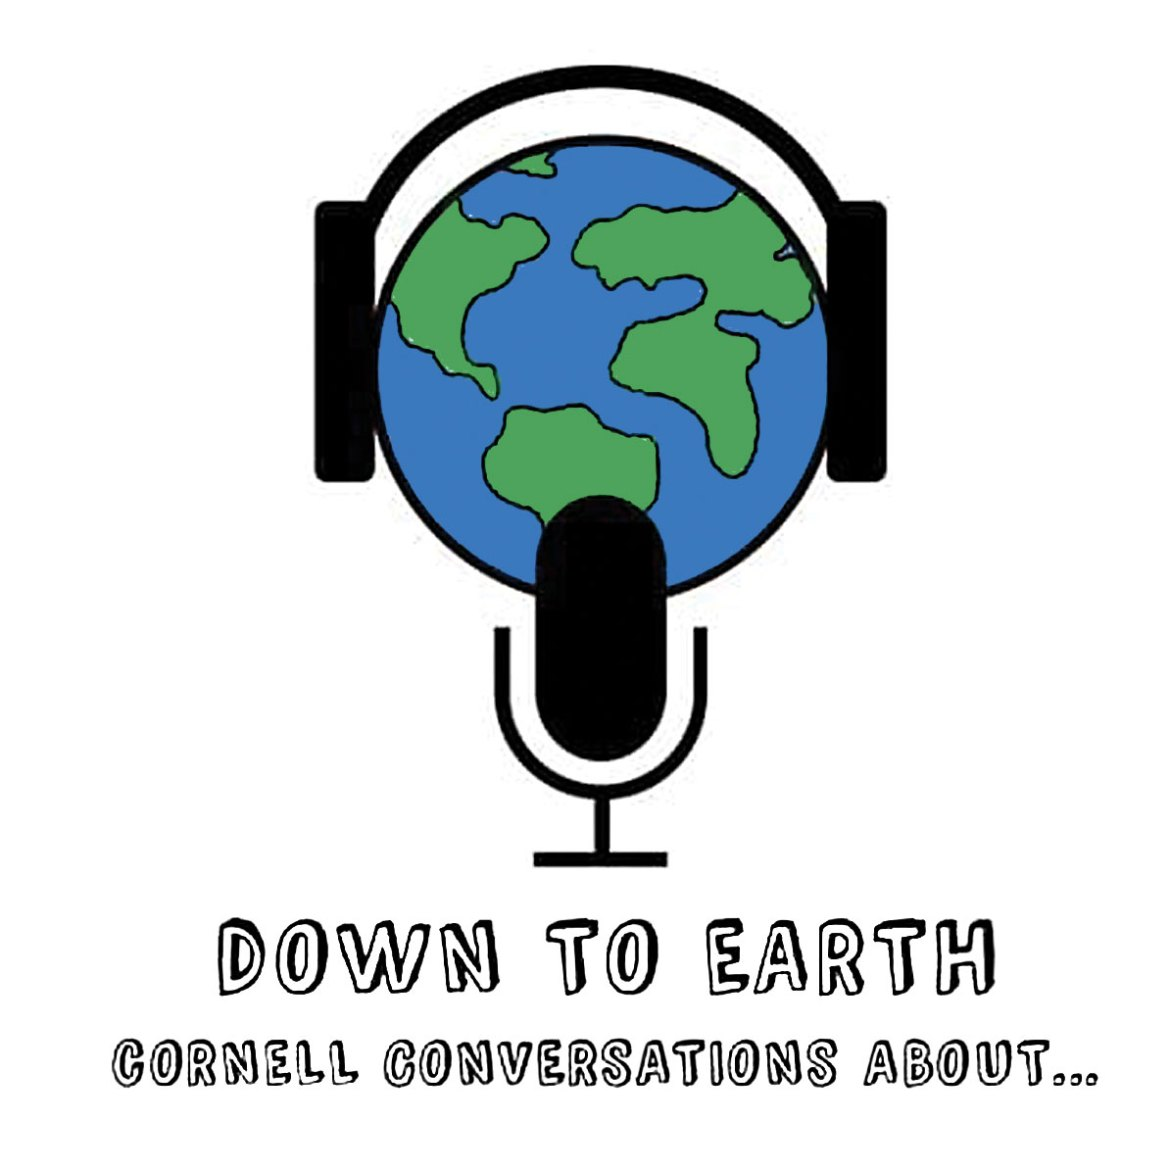 Climate awareness | Down to Earth seeks to discuss the effect the climate has on our society and well-being.